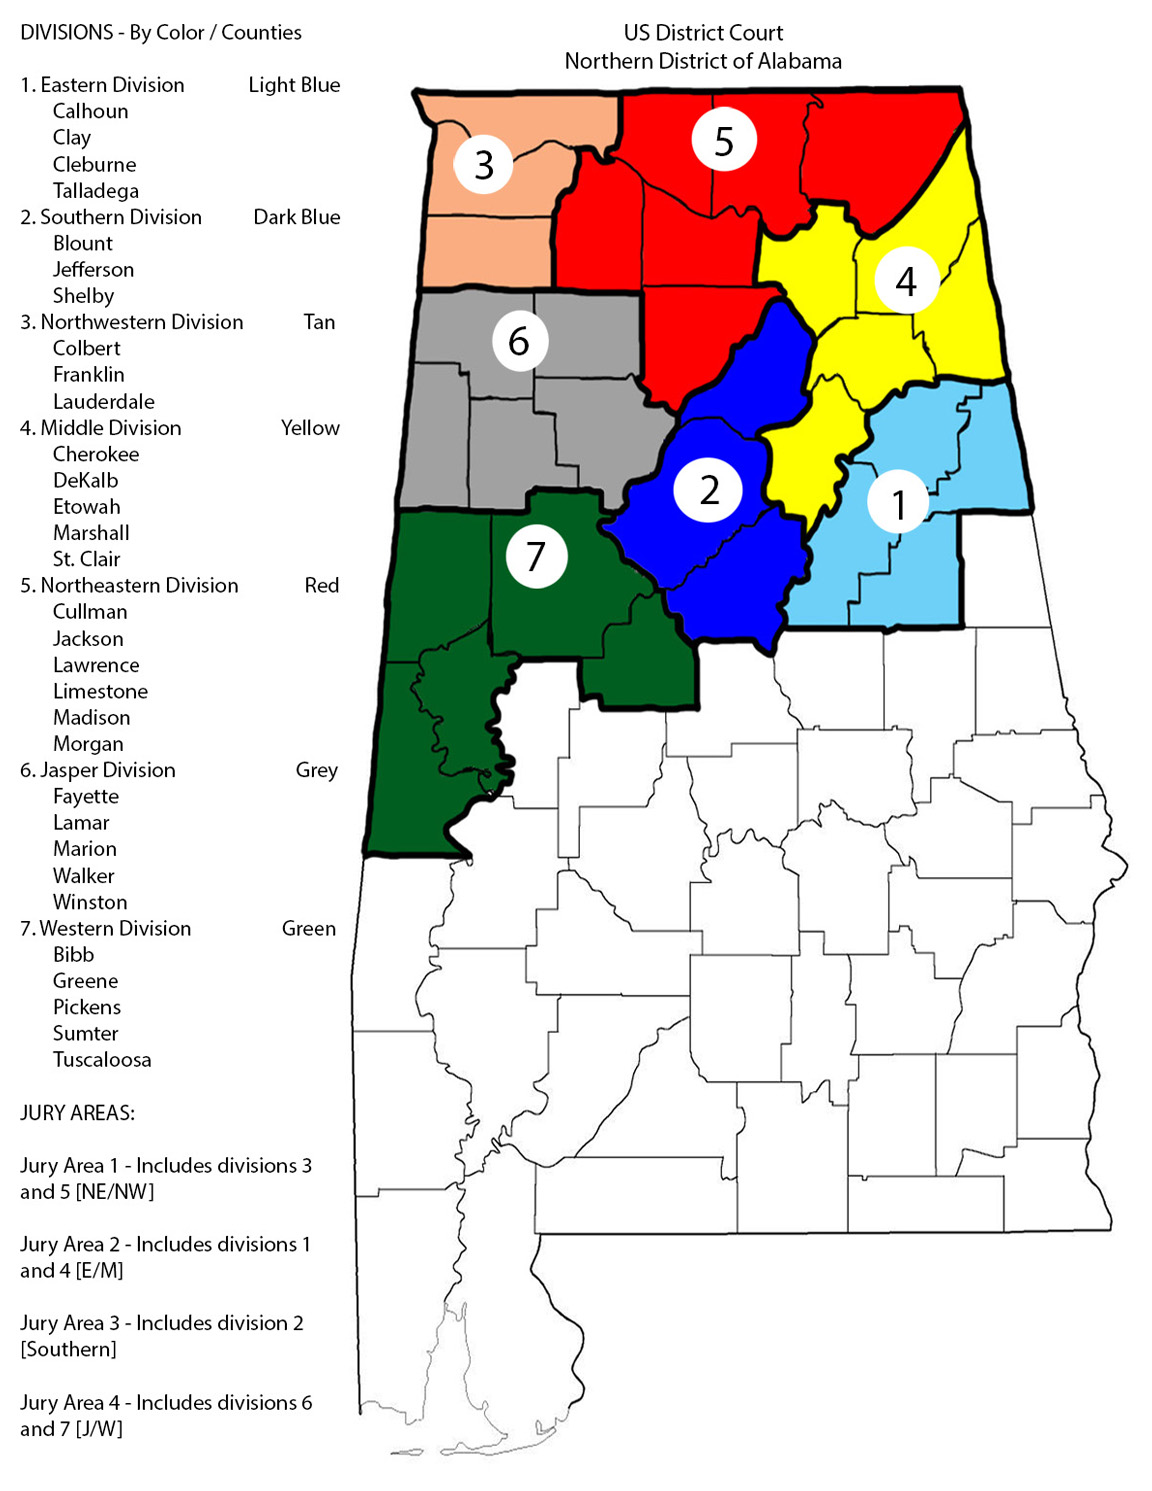 Northern District of Alabama | United States District Court